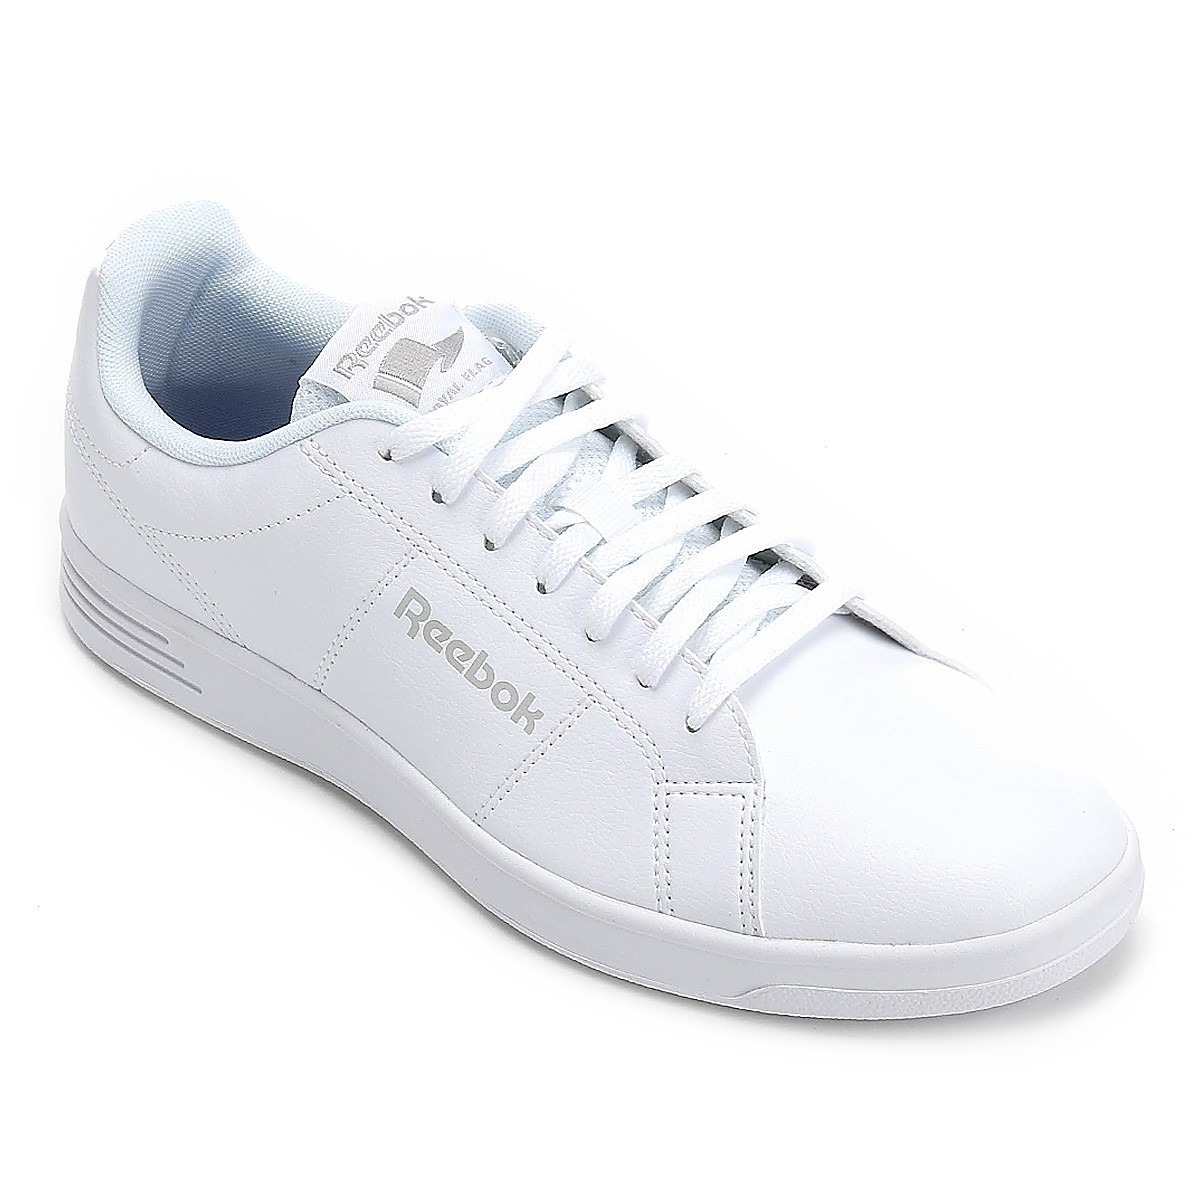 6f2fe59ac1 Tenis Reebok Royal Rally Bs9072 Total White Originales -   899.00 en ...